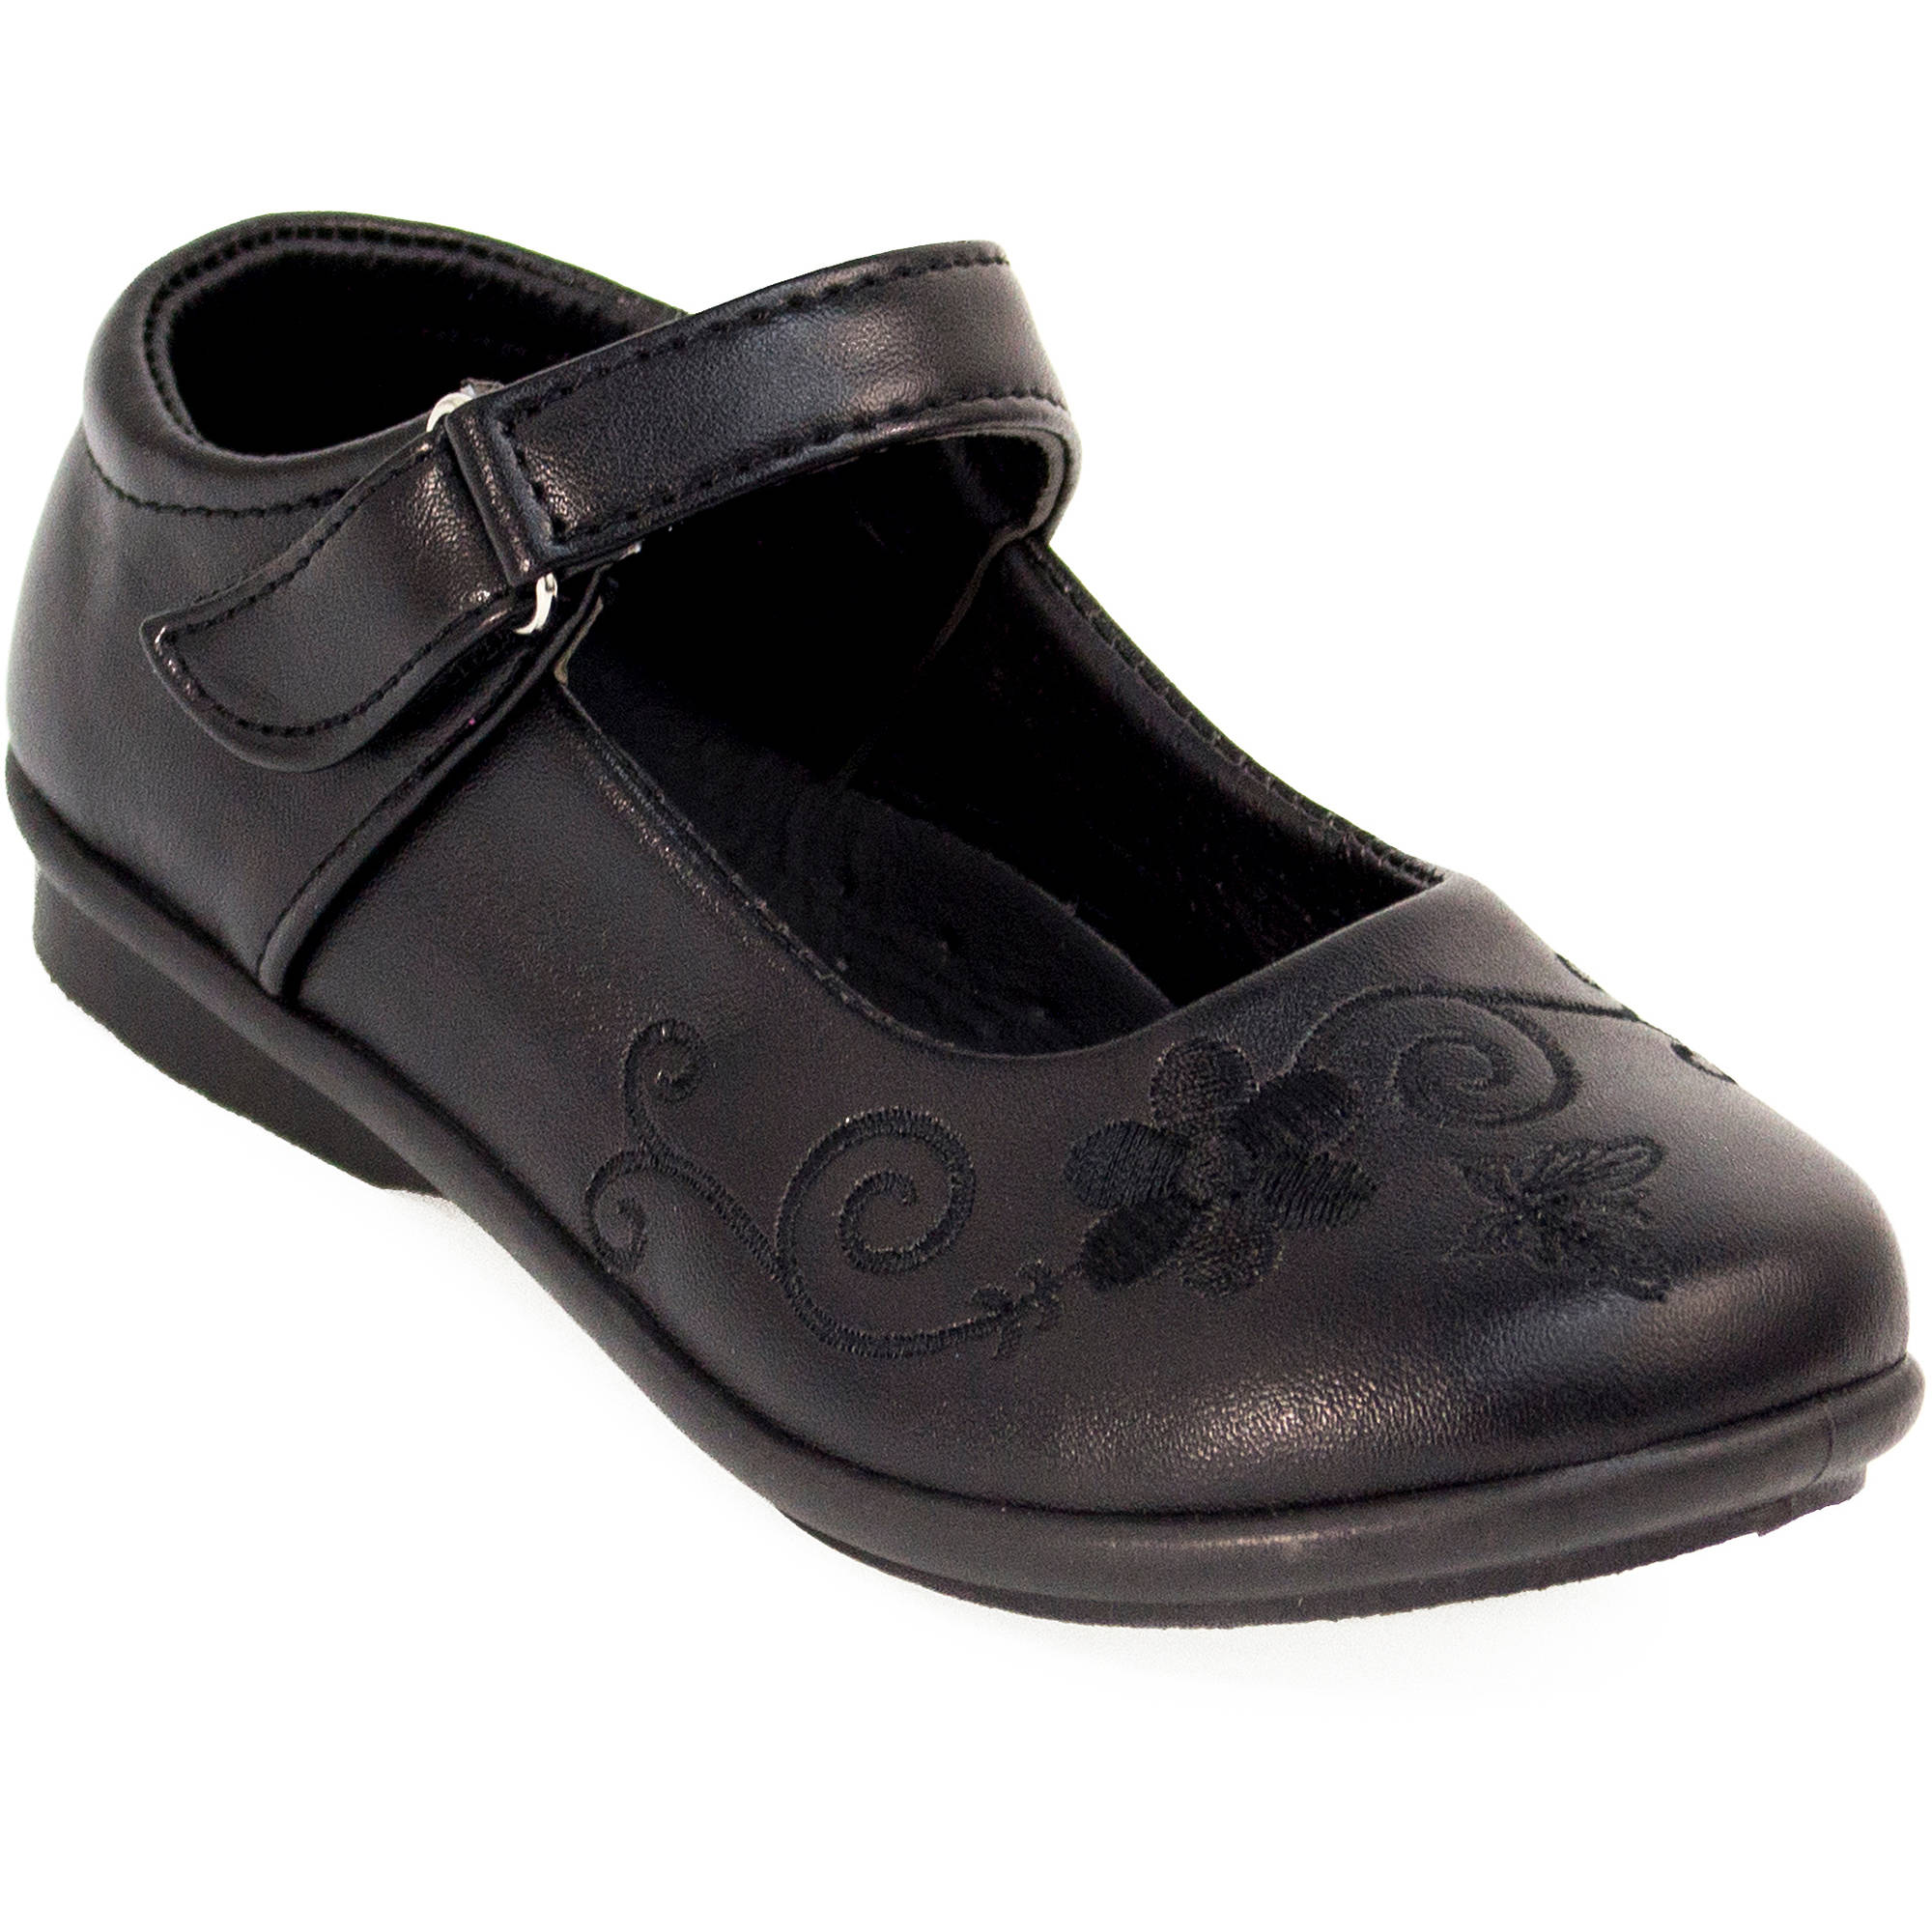 Petalia Girls' Mary Jane School Shoe